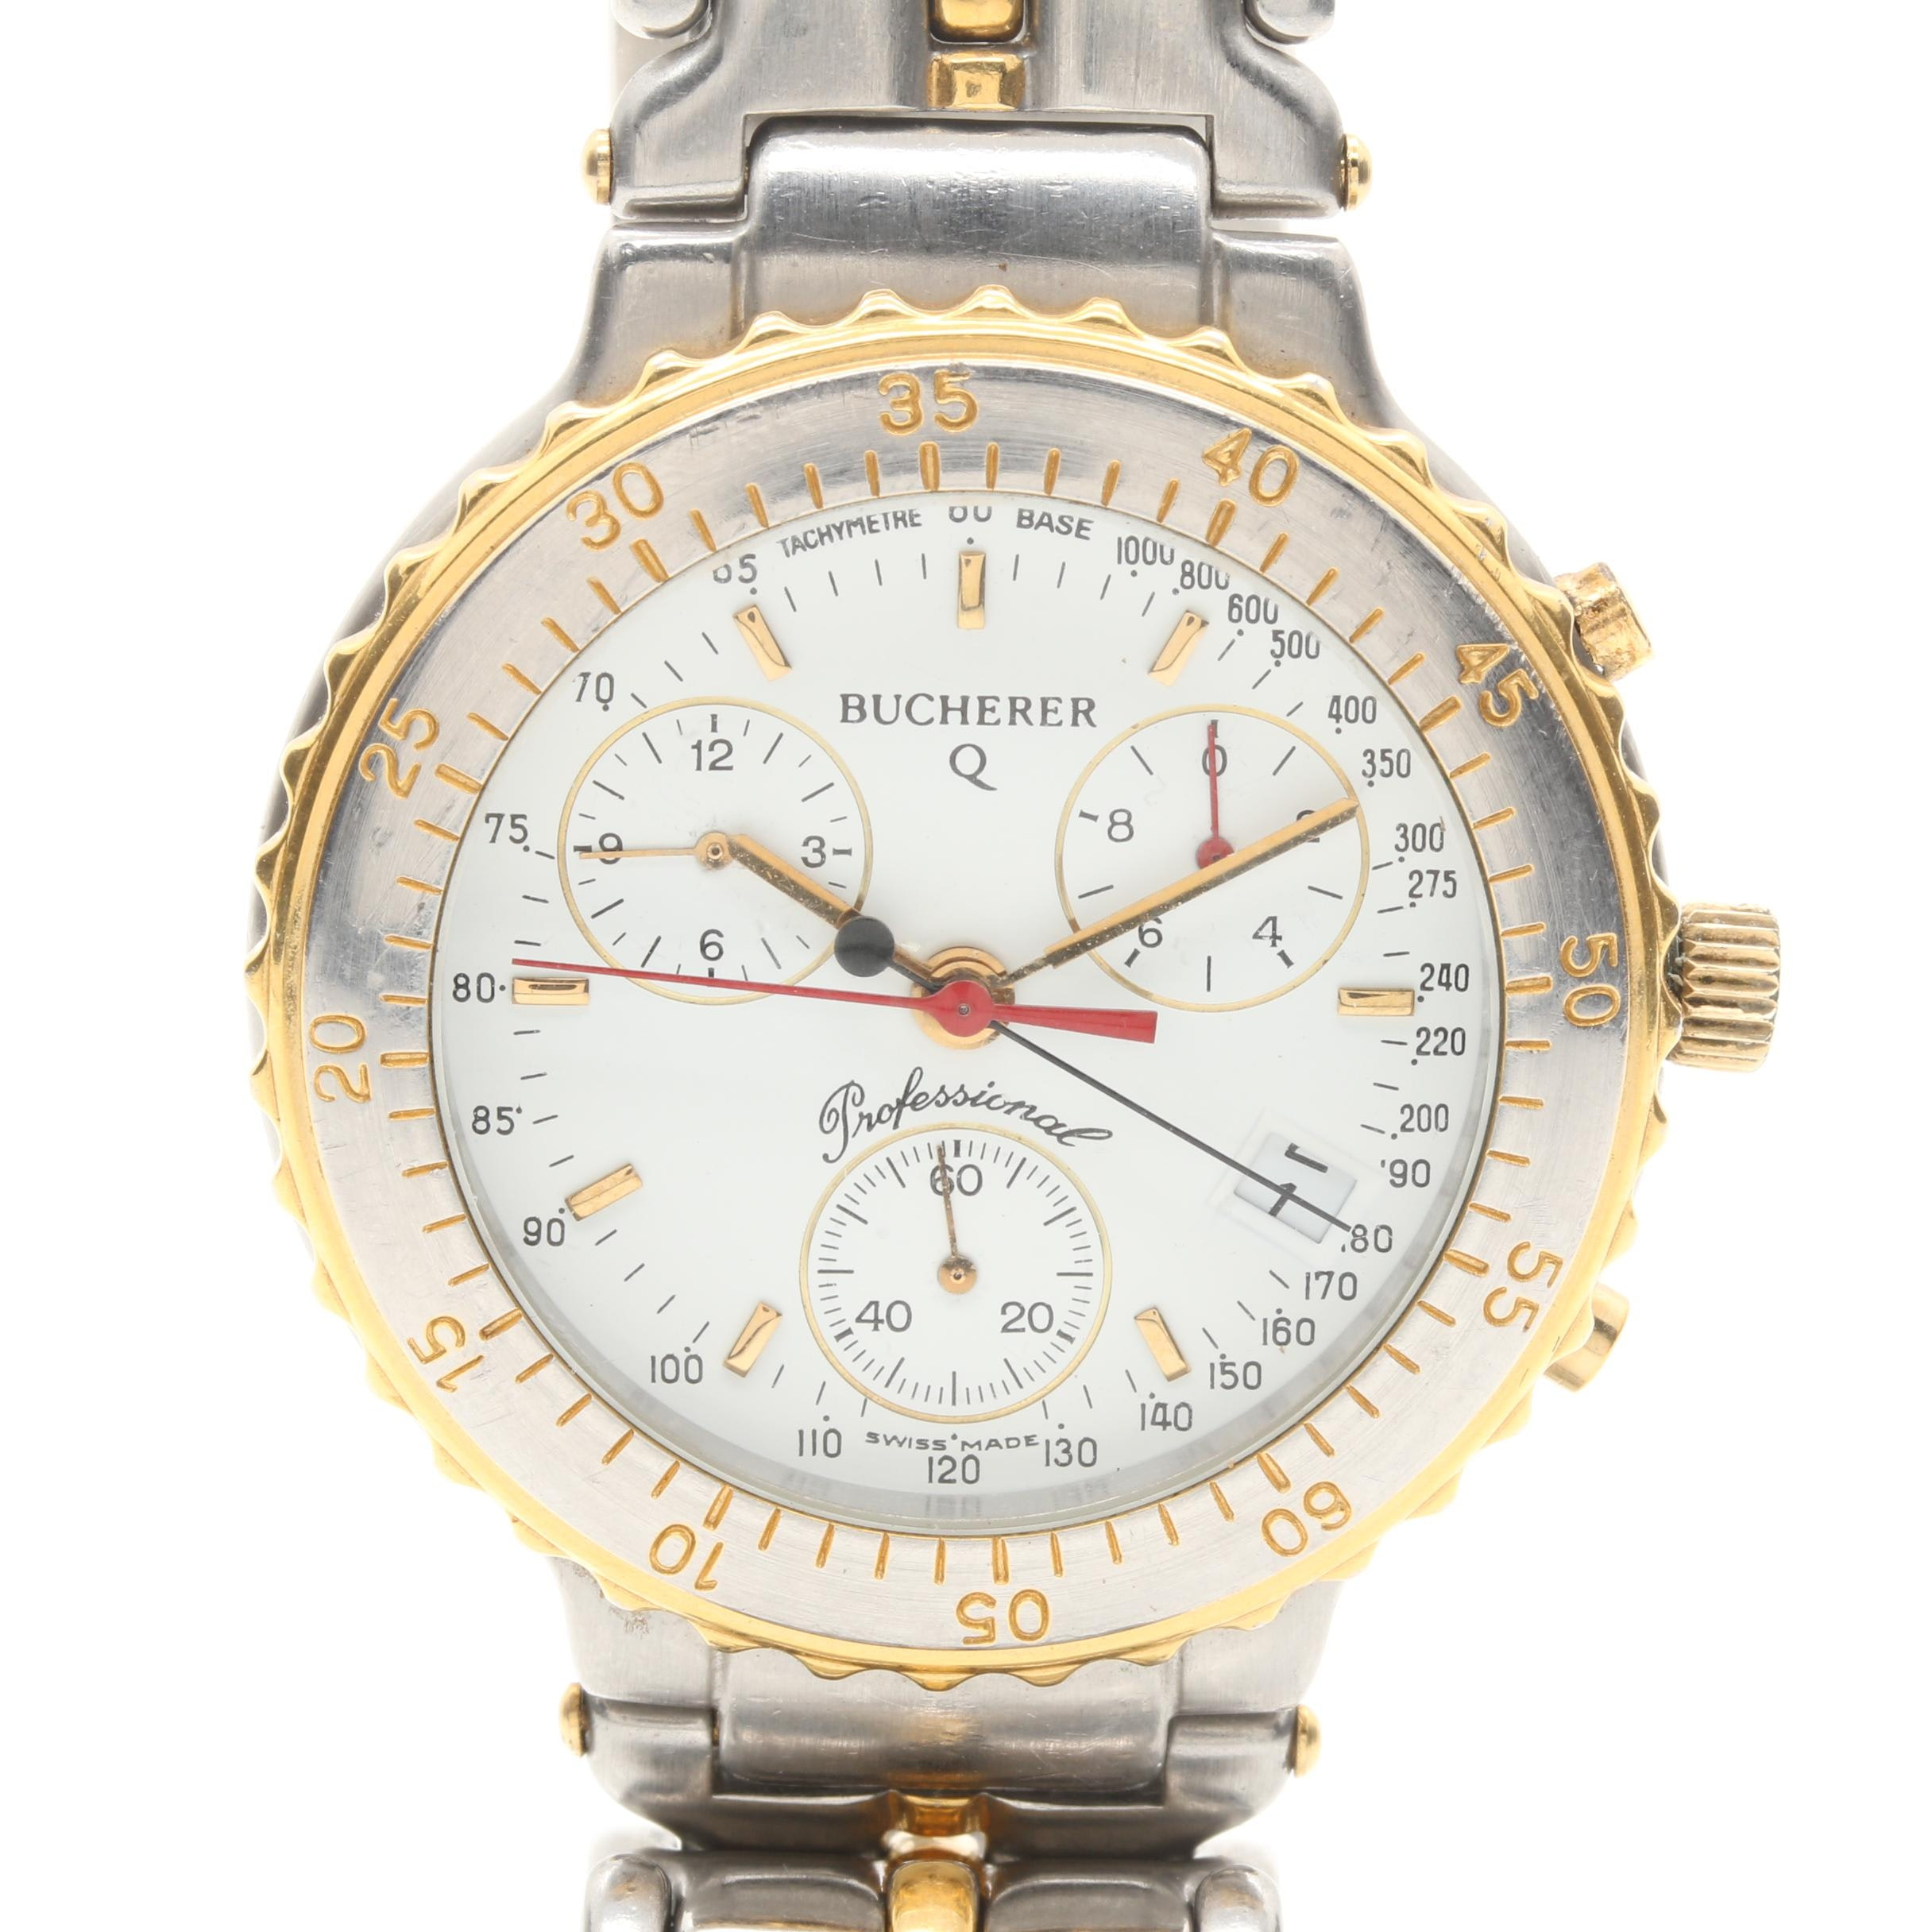 Two Tone Burcherer Chronograph Wristwatch